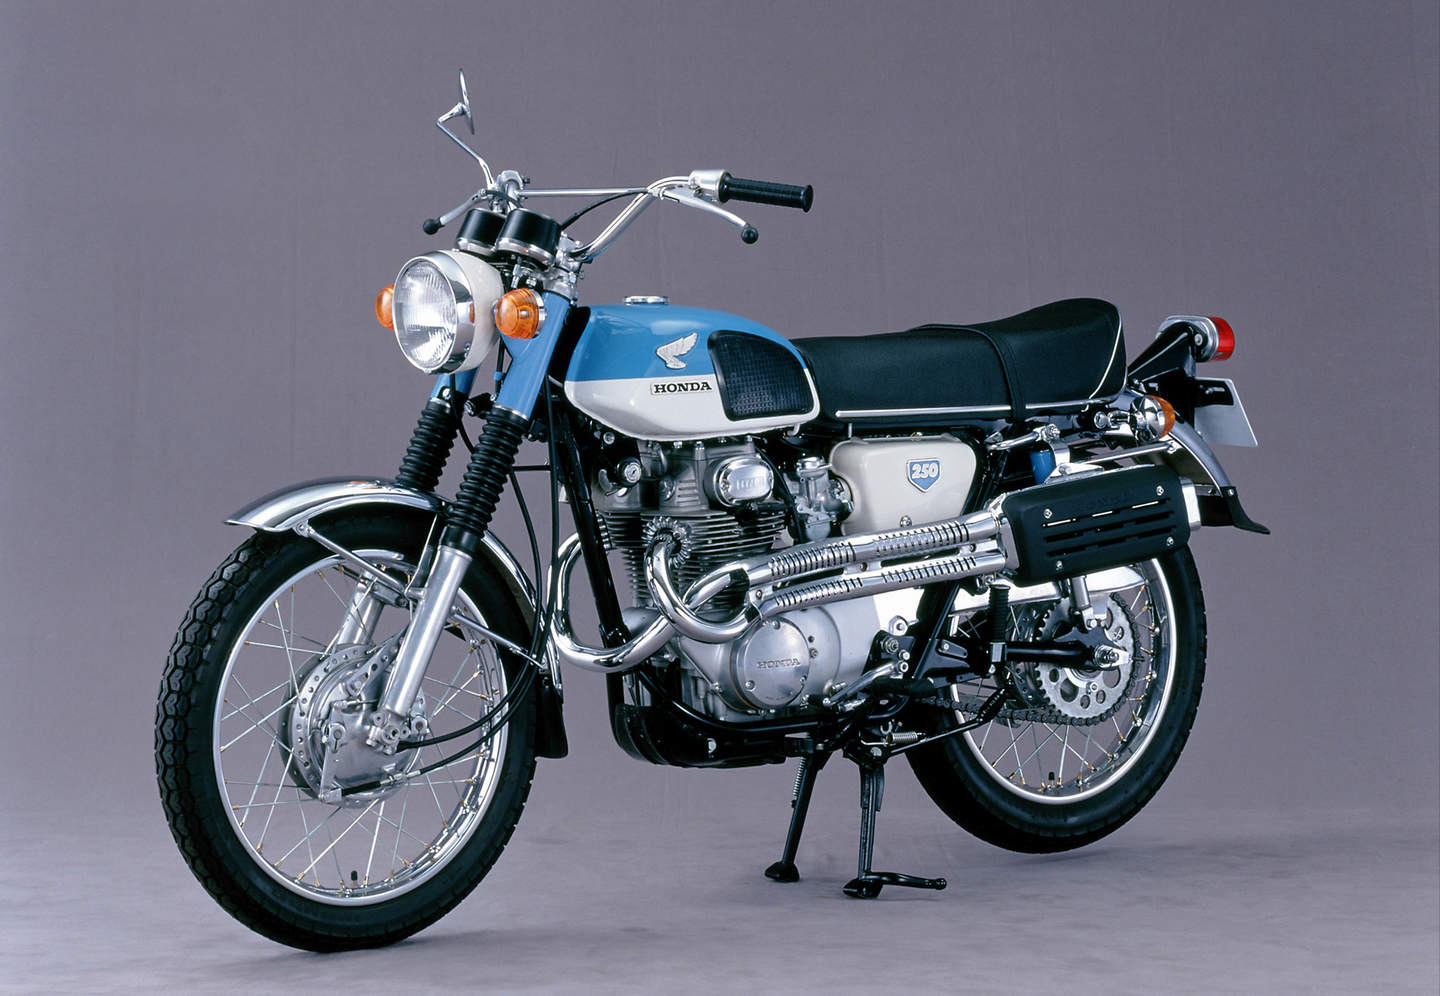 311056 Honda Cb 50 Cafe Racer likewise Watch likewise Dutchman Motorbikes besides Honda Cl 250 Scrambler Und Cl 250s also 1950s Vintage Mercedes Benz. on kottmotorcycles